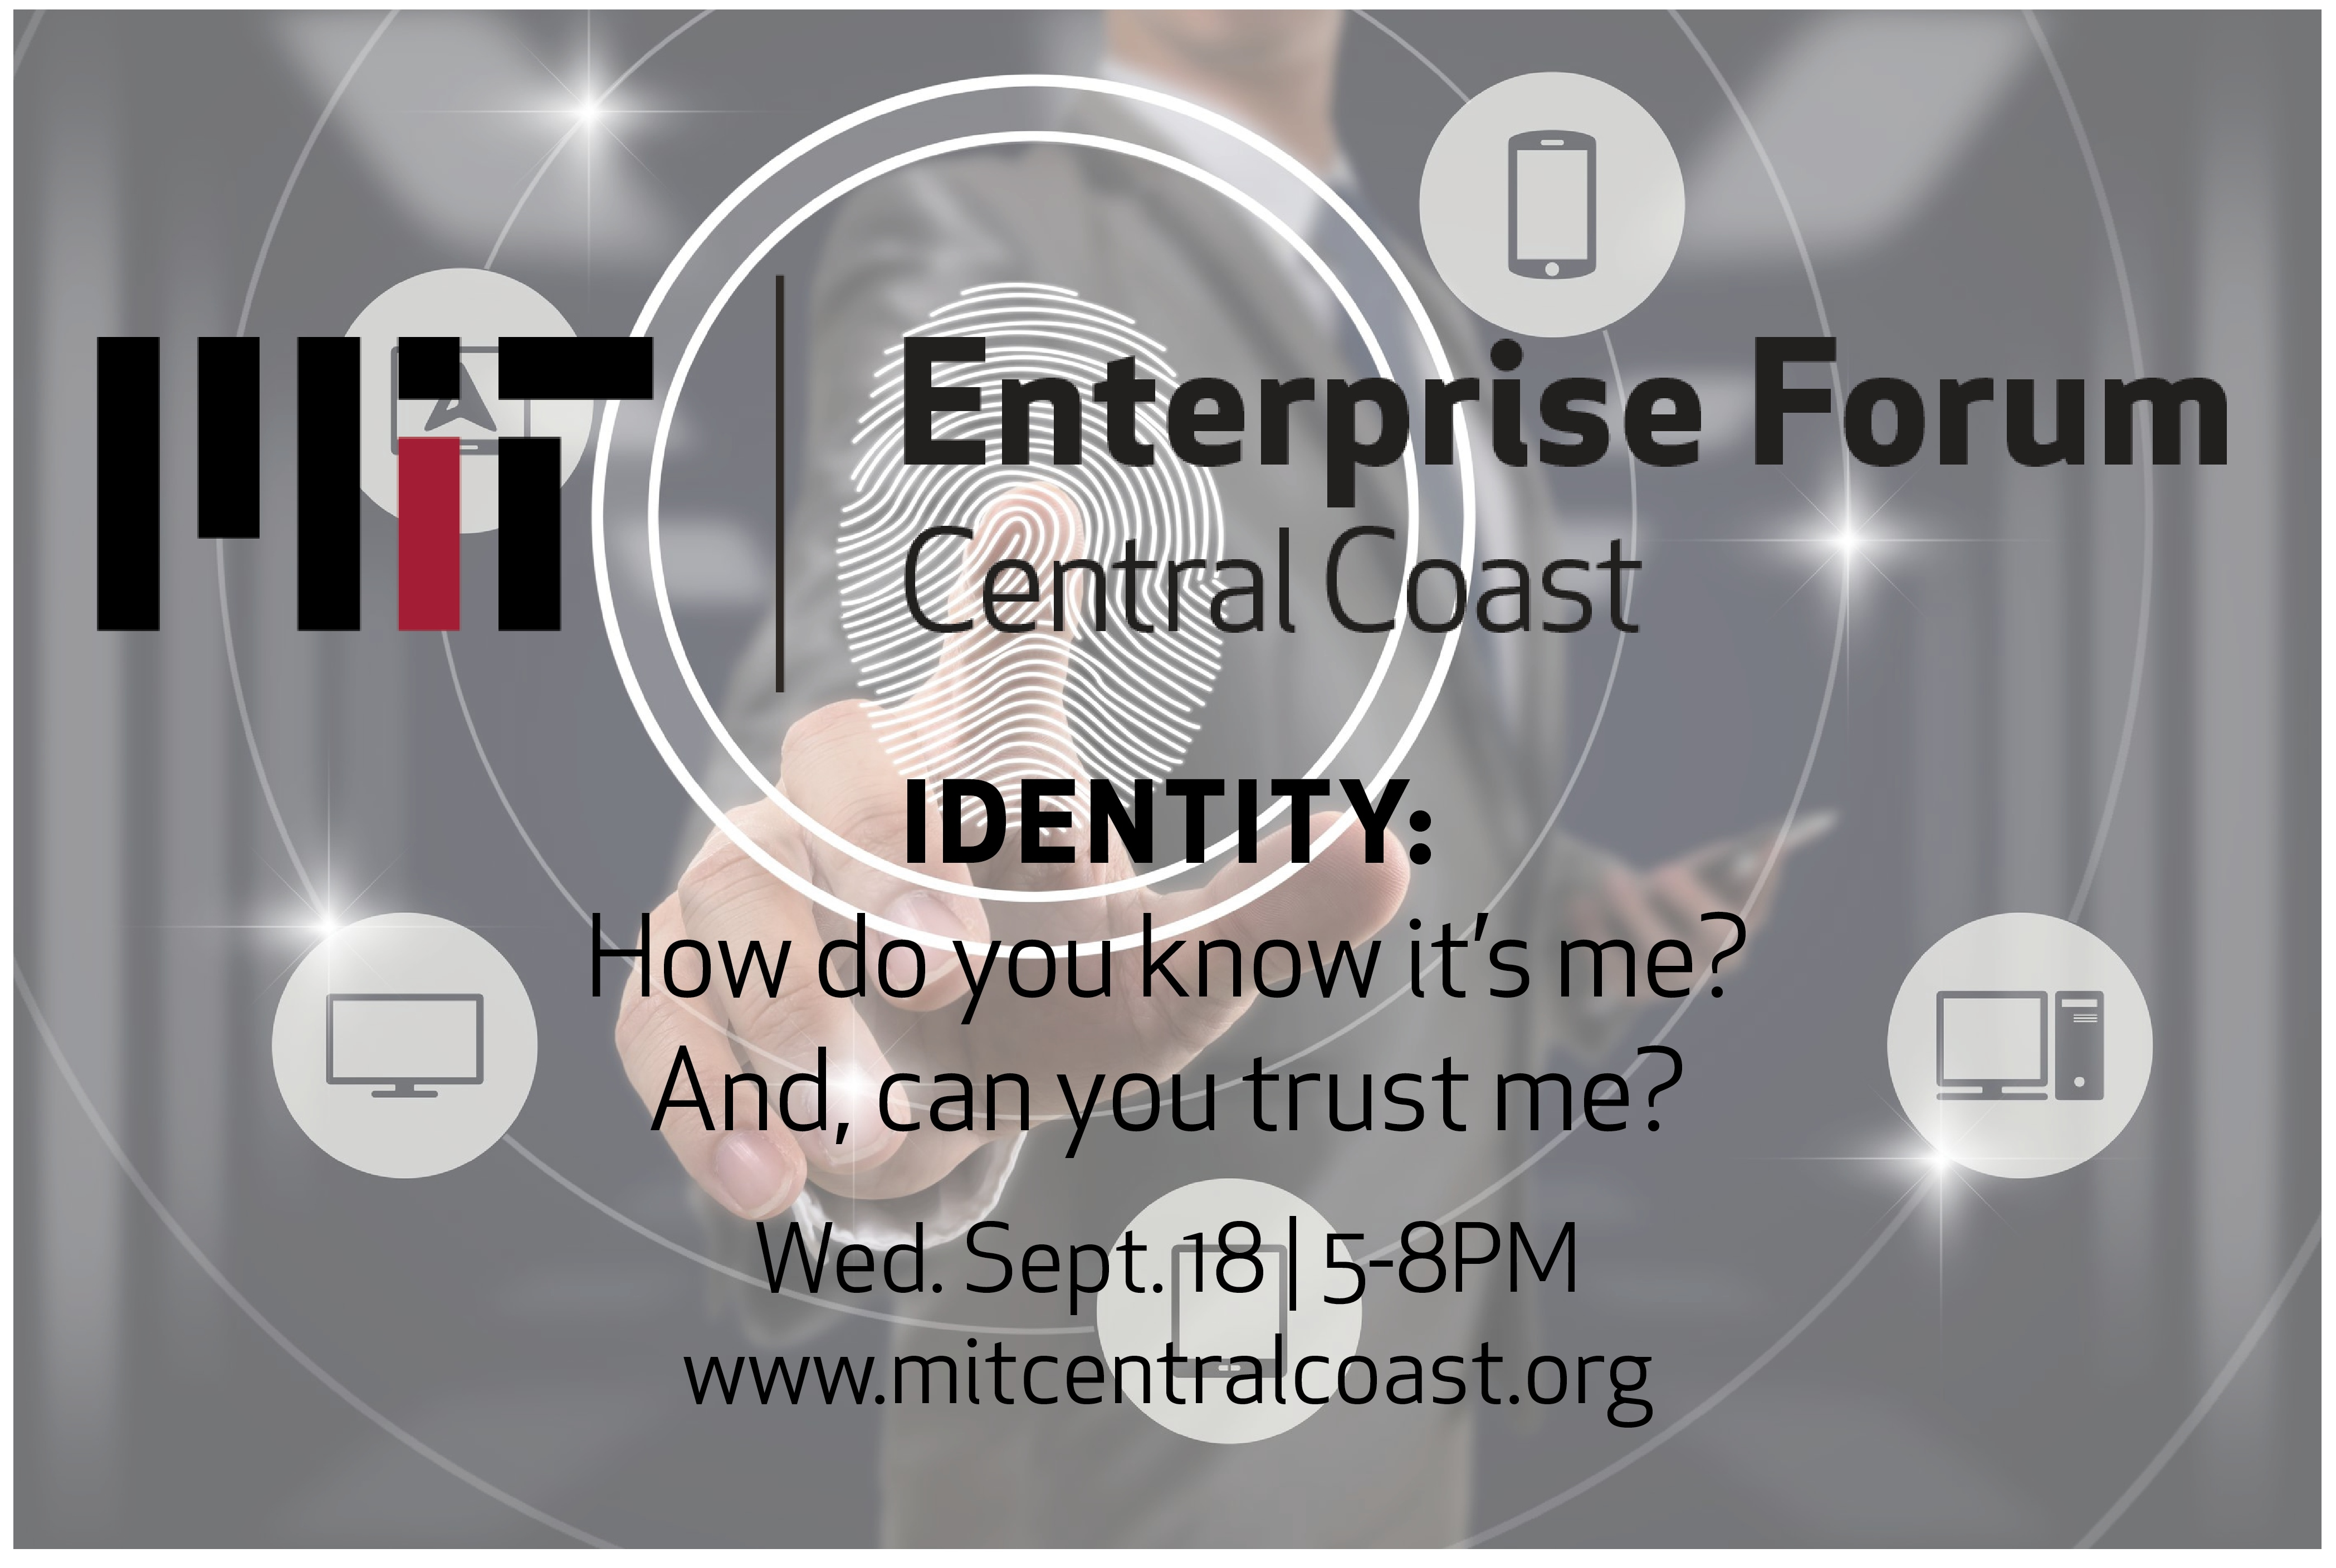 IDENTITY: HOW DO YOU KNOW IT'S ME? CAN YOU TRUST ME?